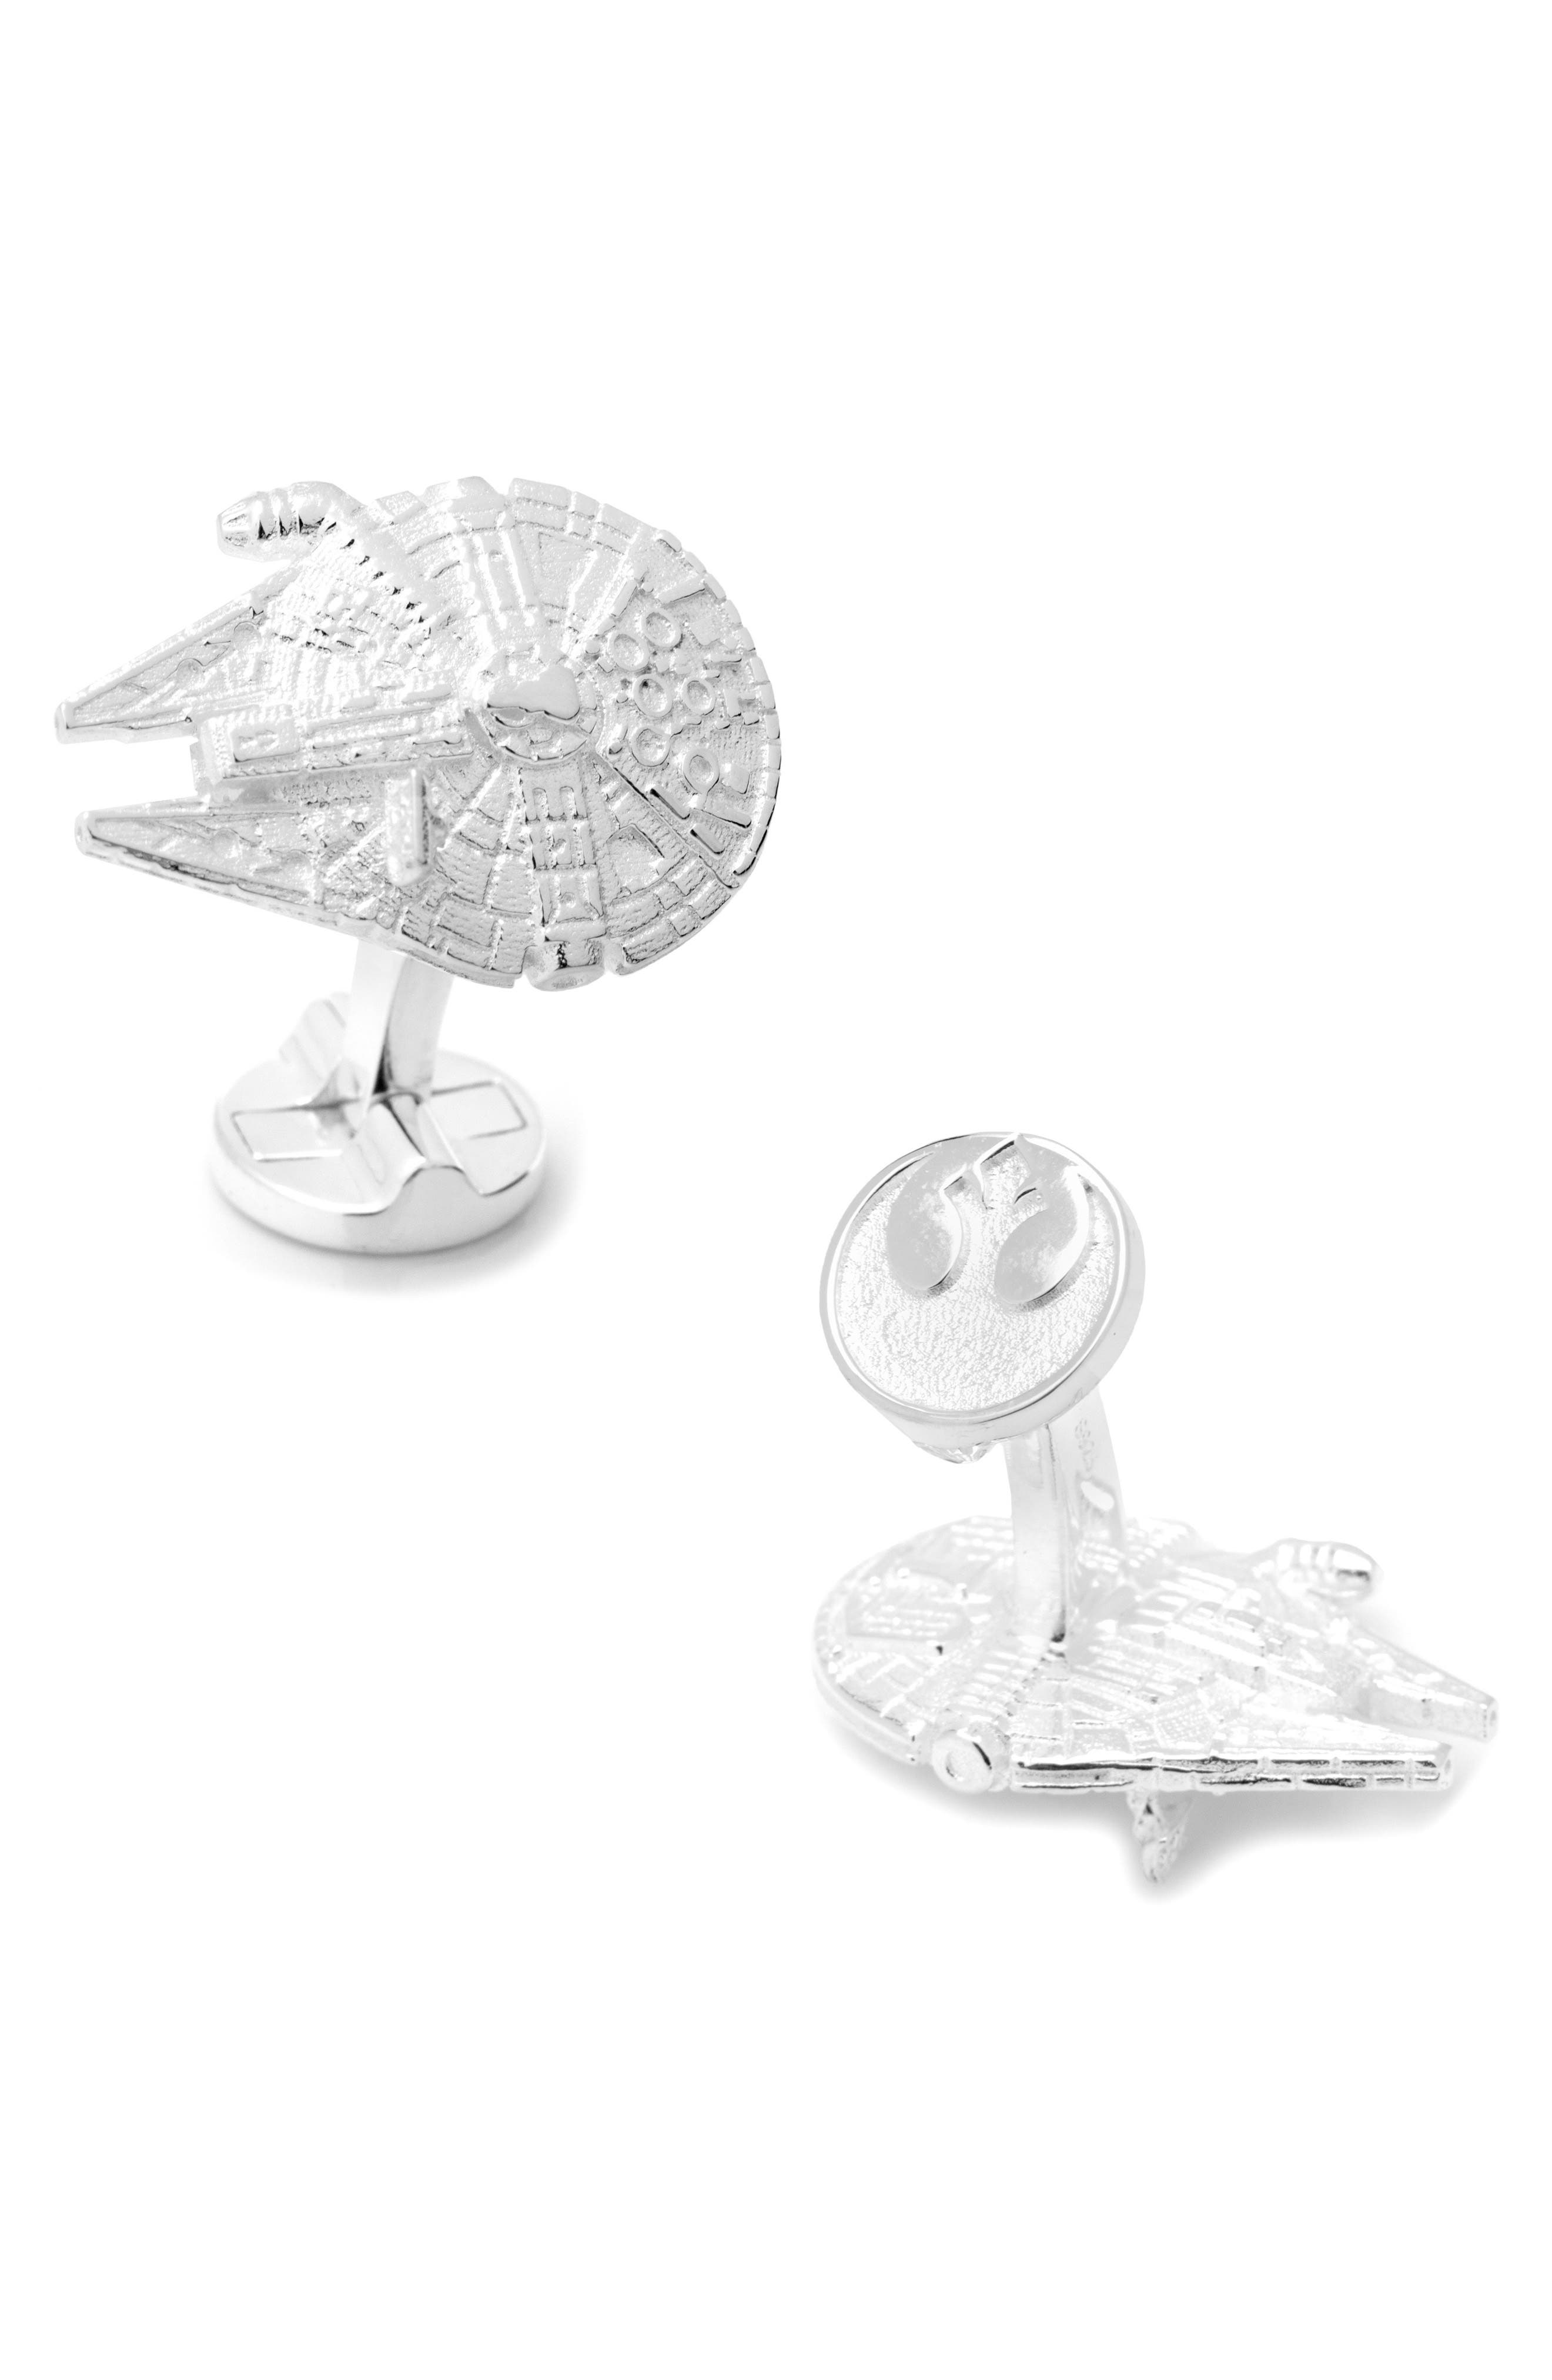 Star Wars<sup>™</sup> Millennium Falcon Cuff Links,                         Main,                         color, Silver